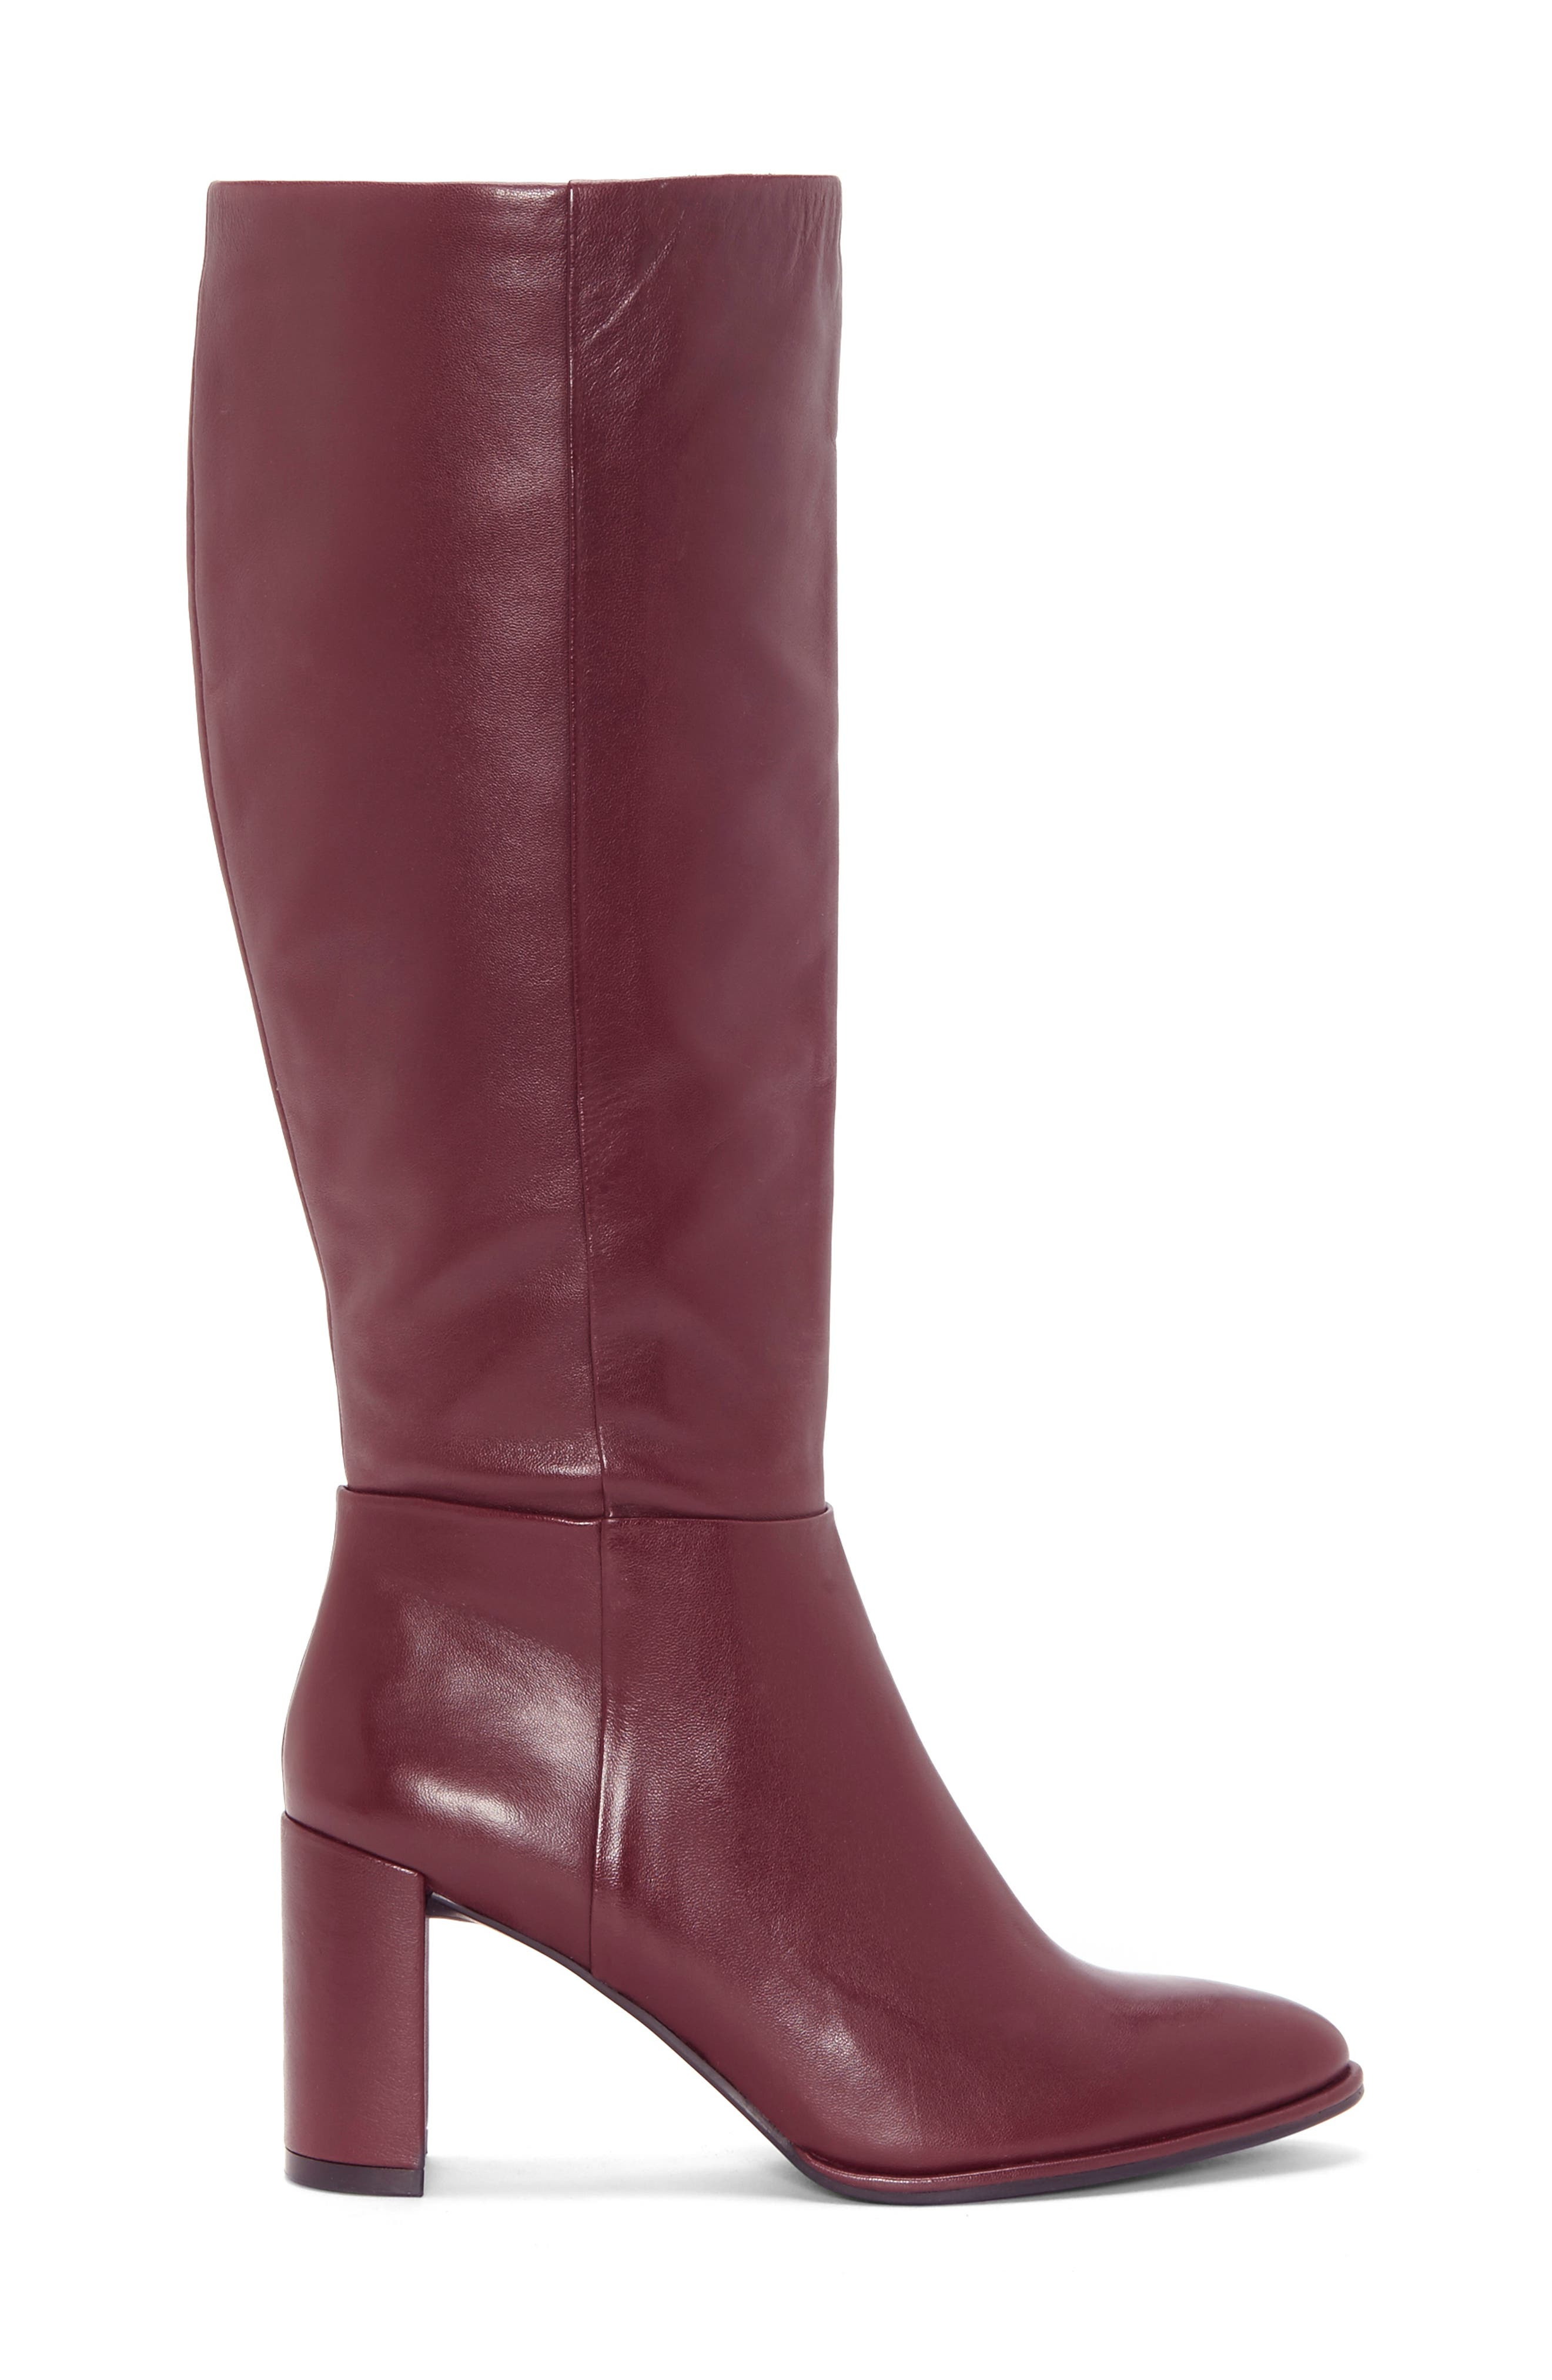 ENZO ANGIOLINI, Wenda Knee High Boot, Alternate thumbnail 3, color, MULLED WINE LEATHER